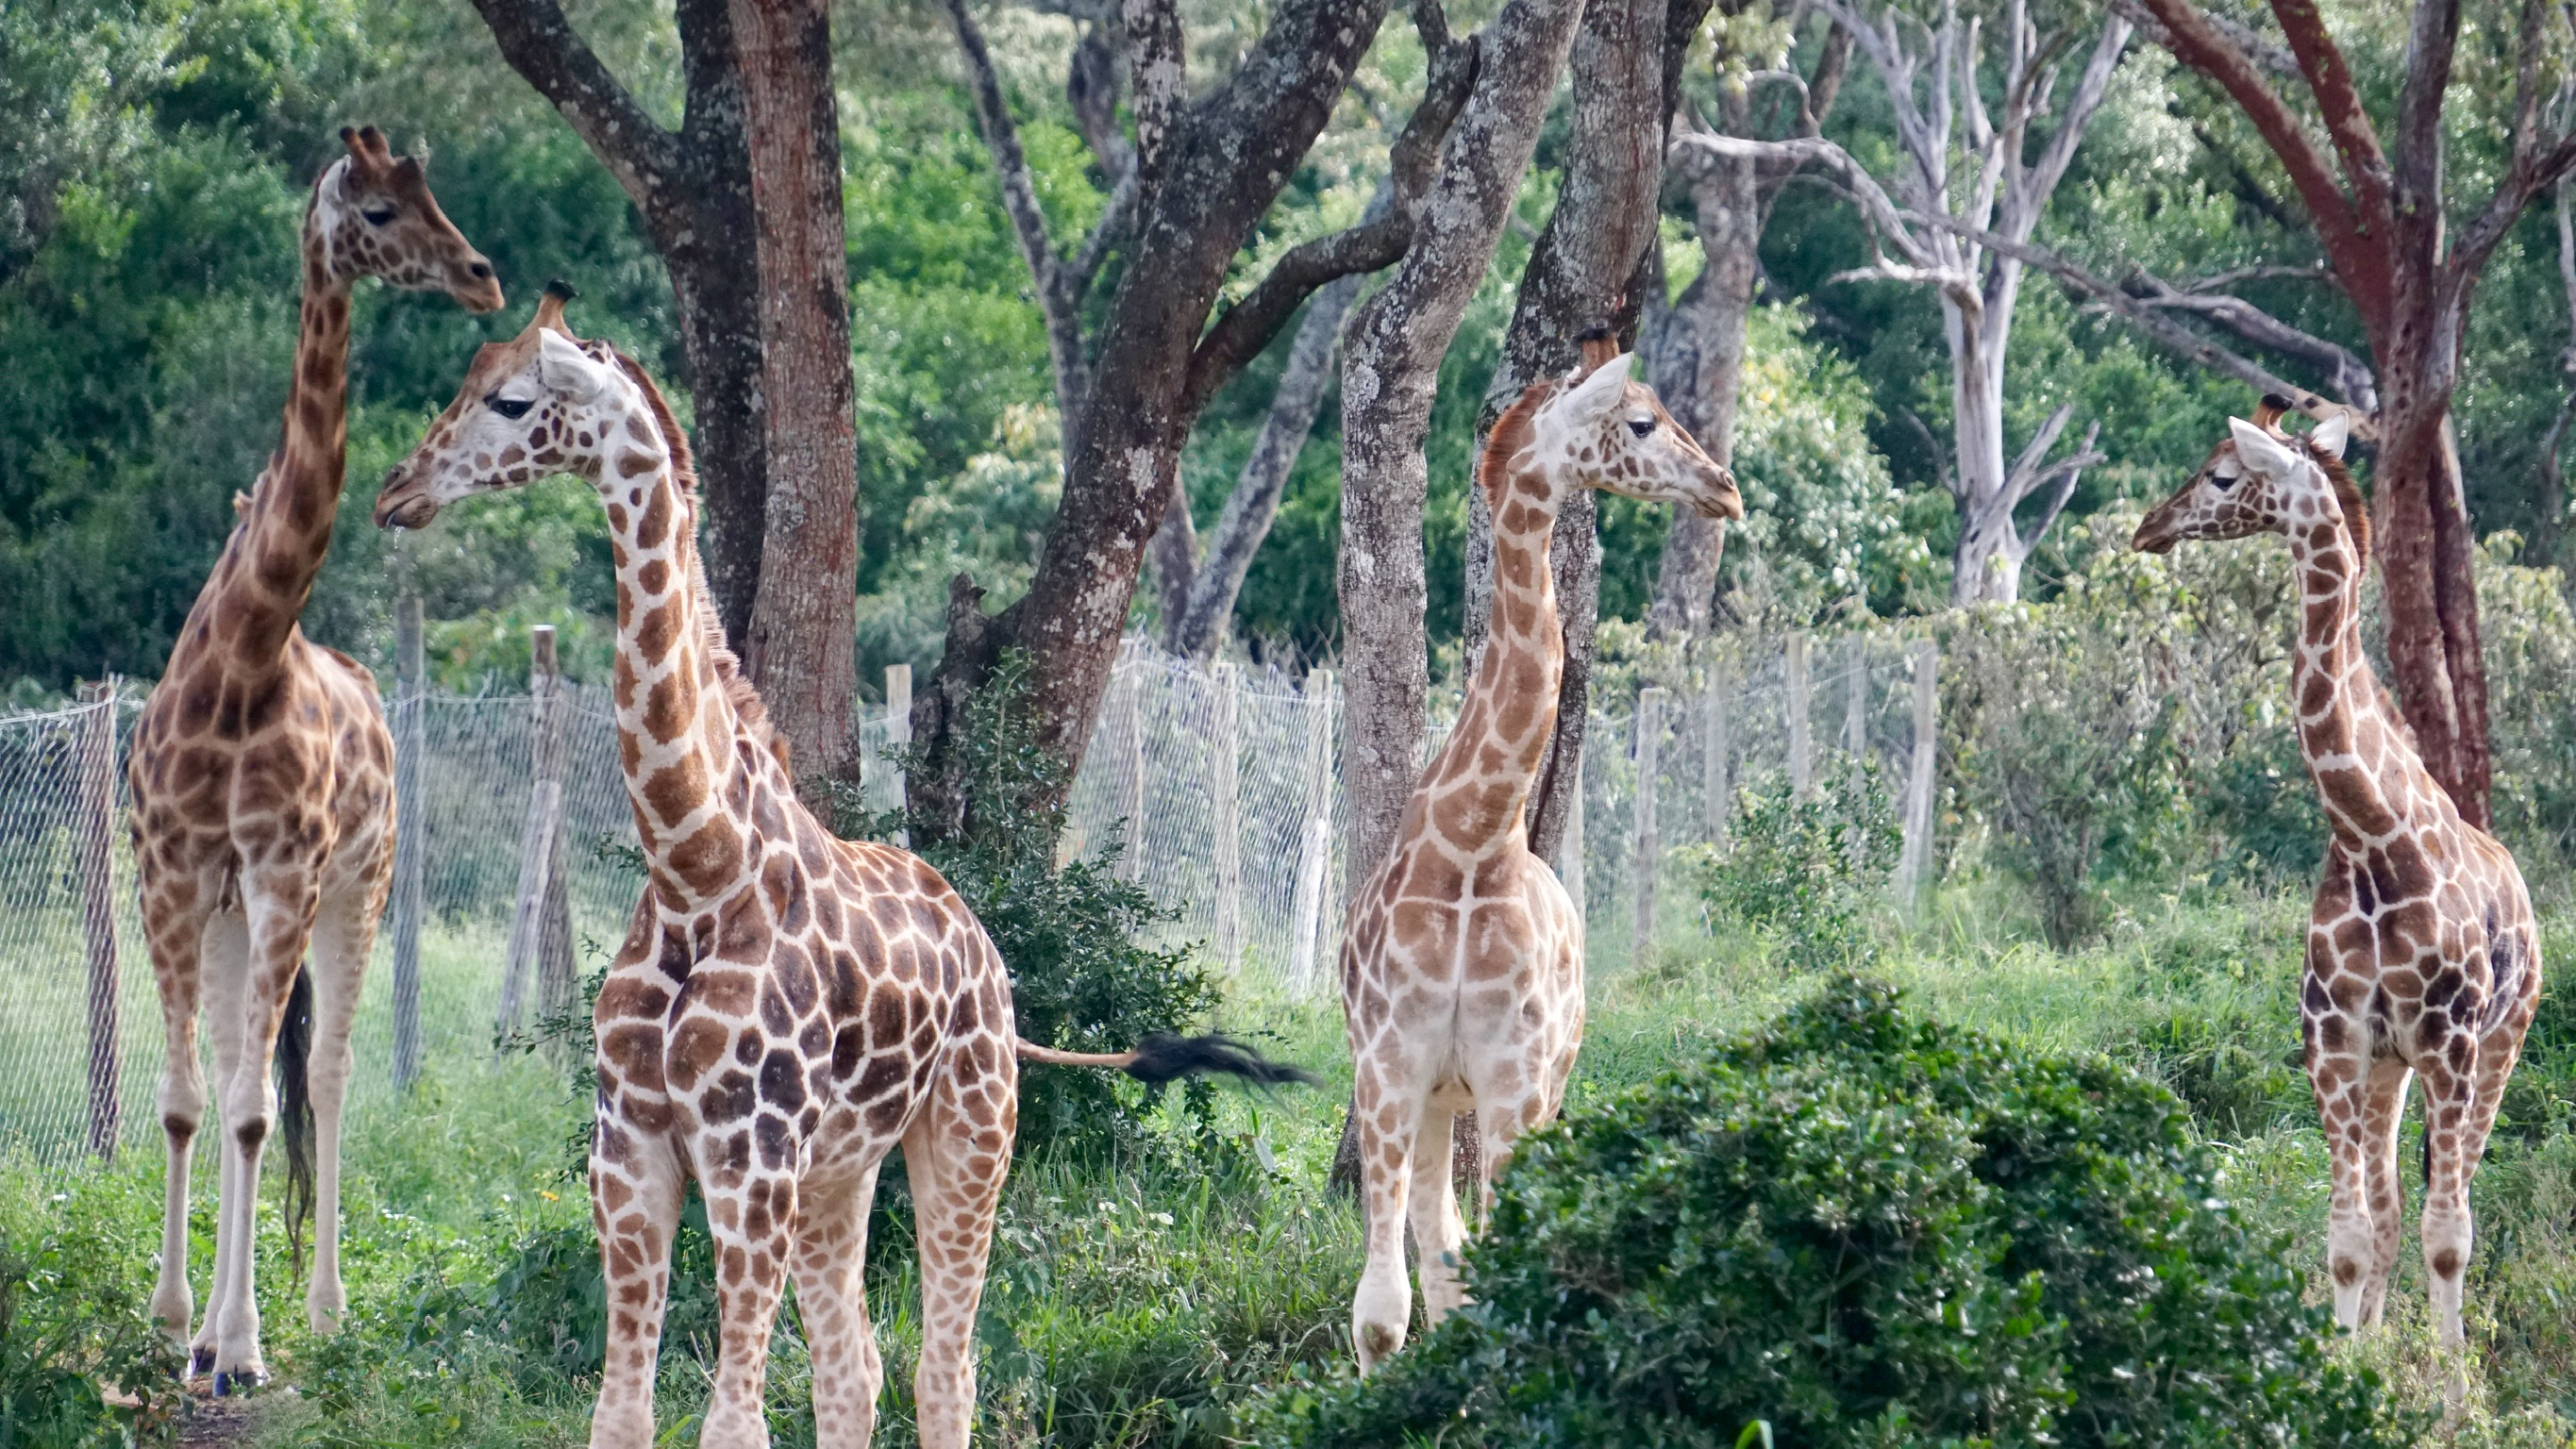 Nairobi…a Day with Elephants and Giraffes